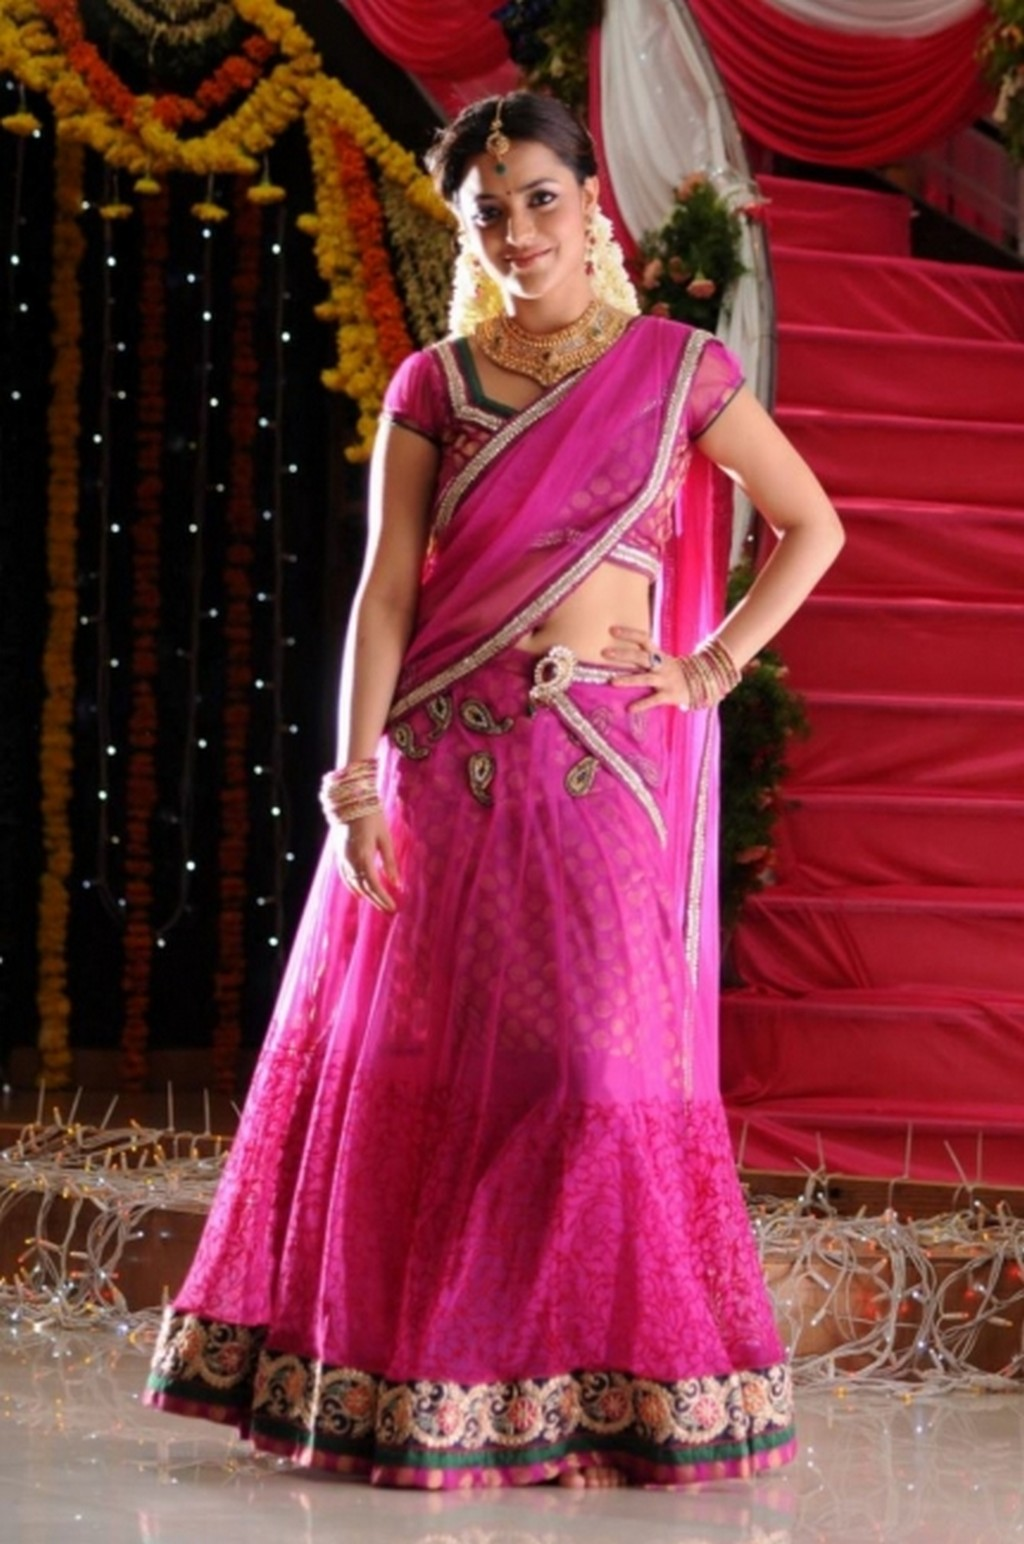 Nisha Agarwal navel, Nisha Agarwal in transparent dress